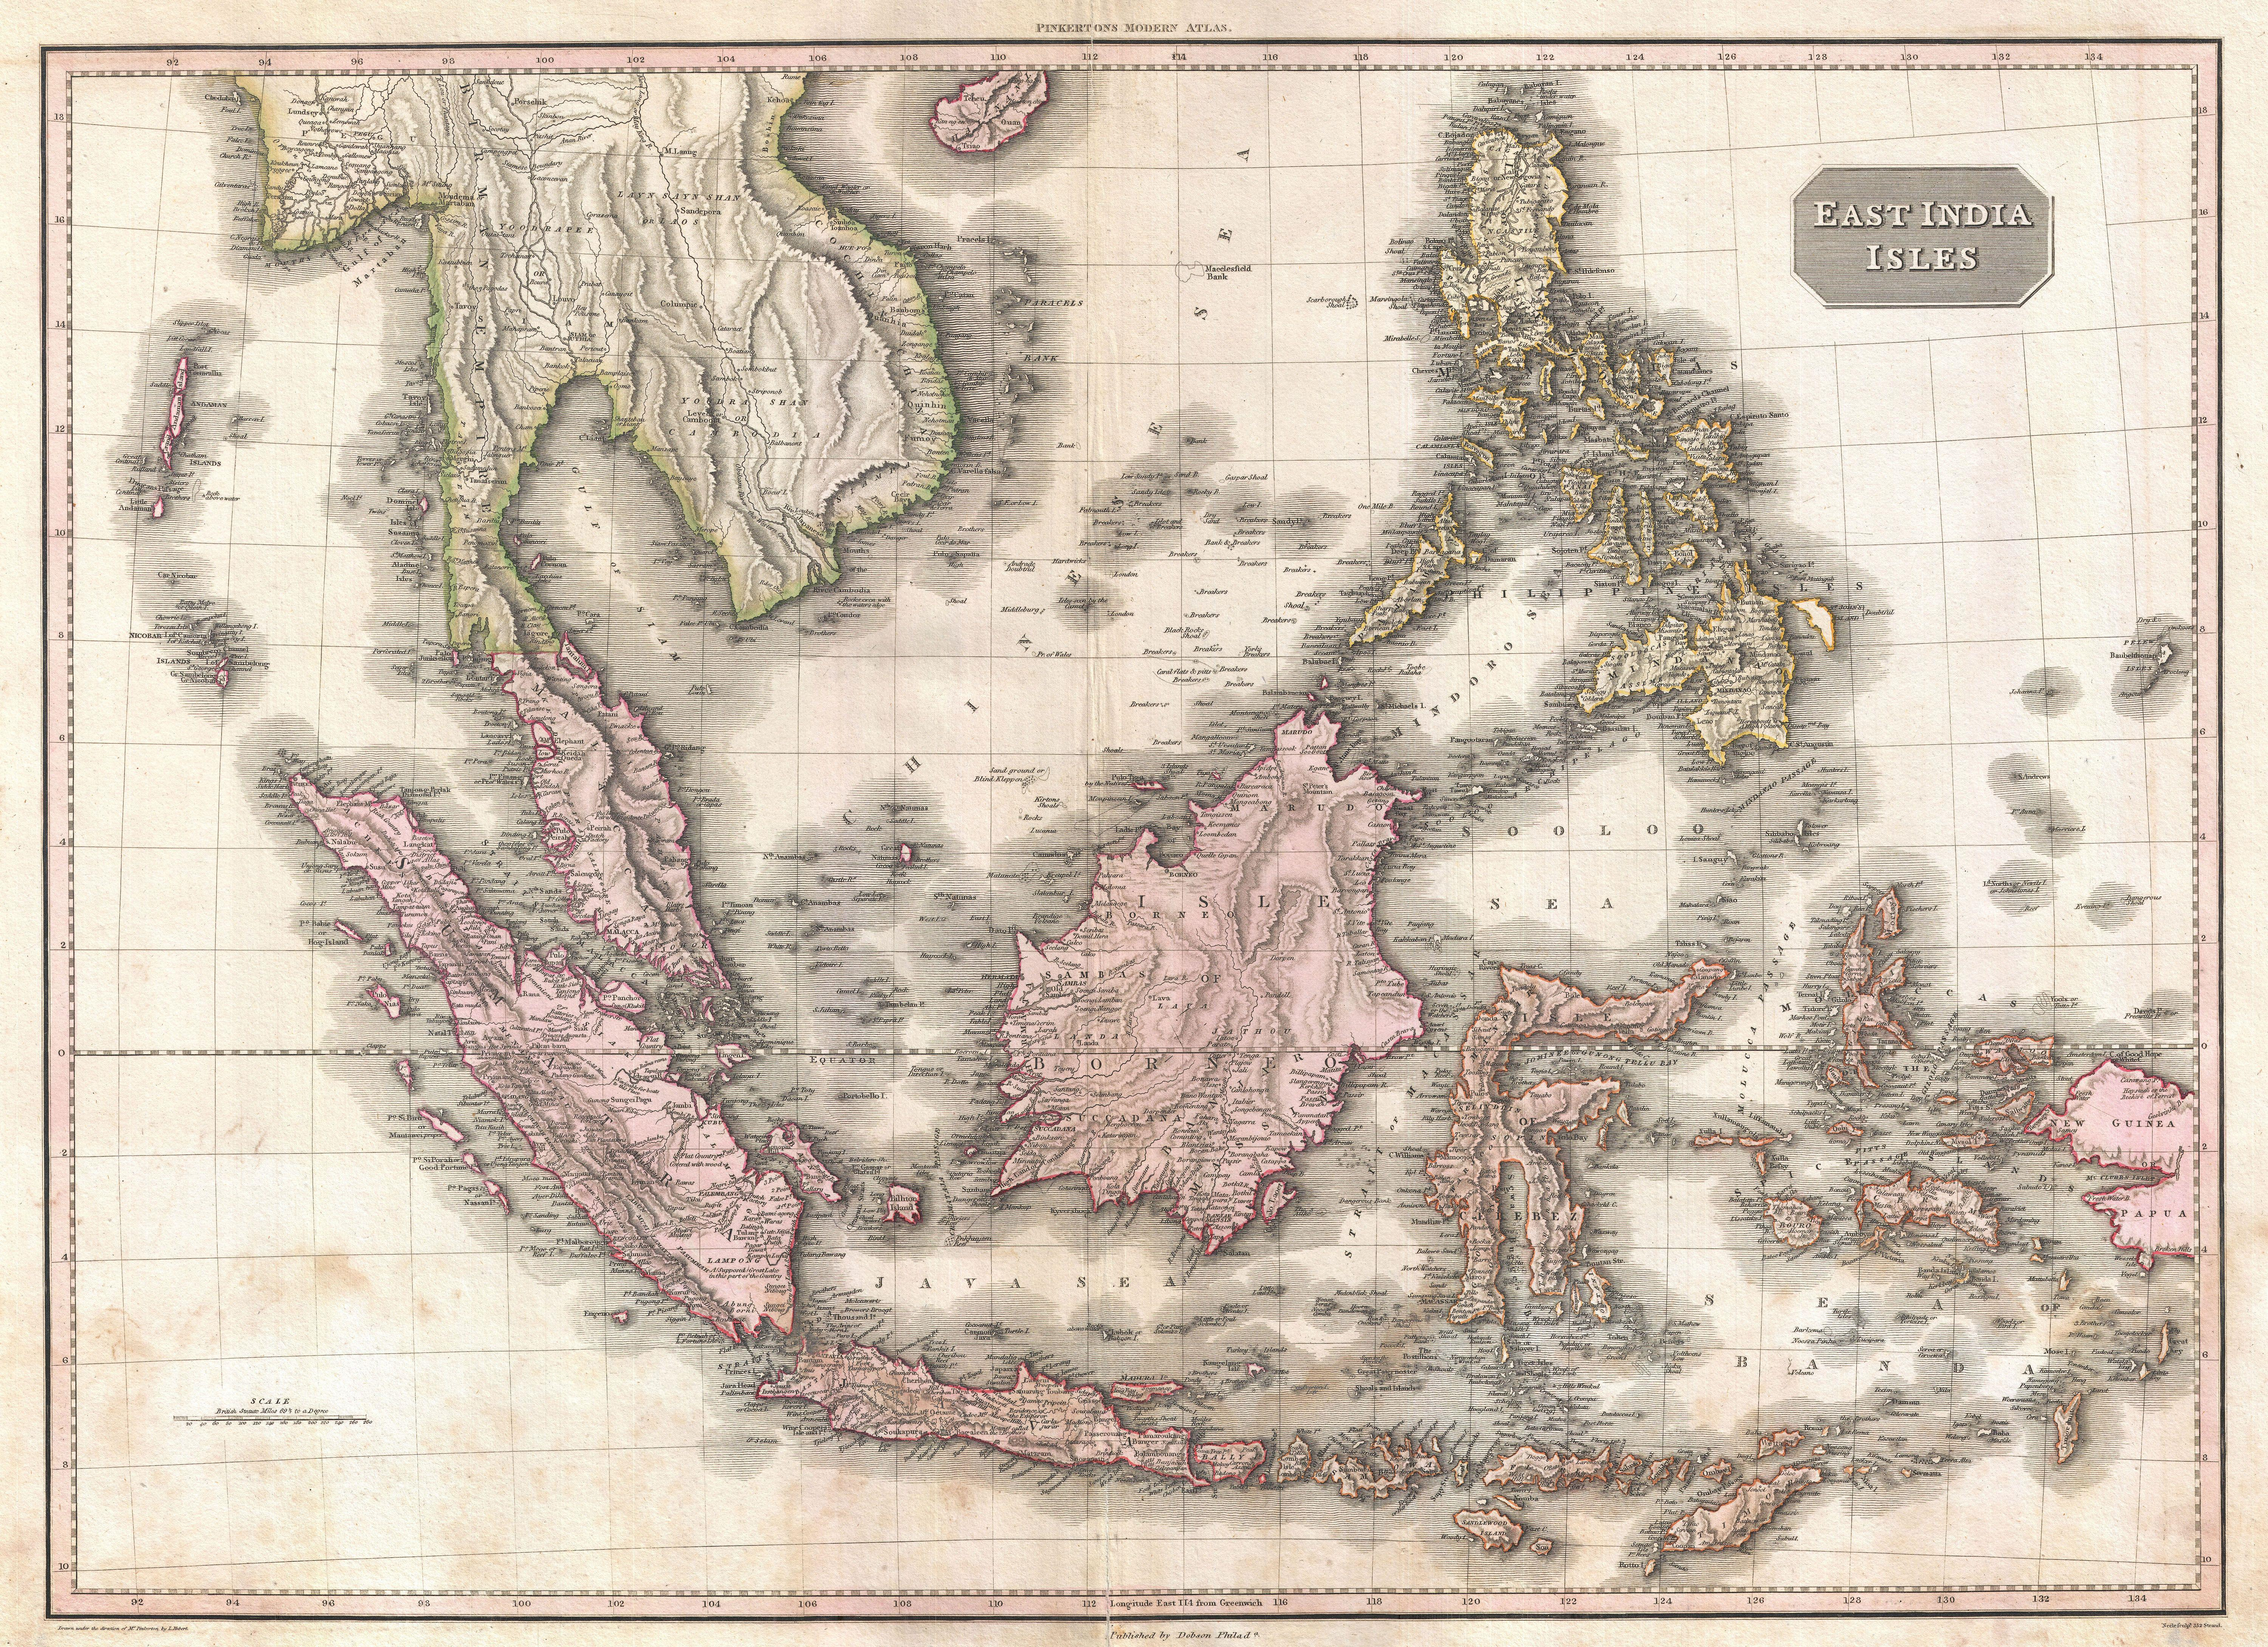 pinkertons 1818 map of the east indies